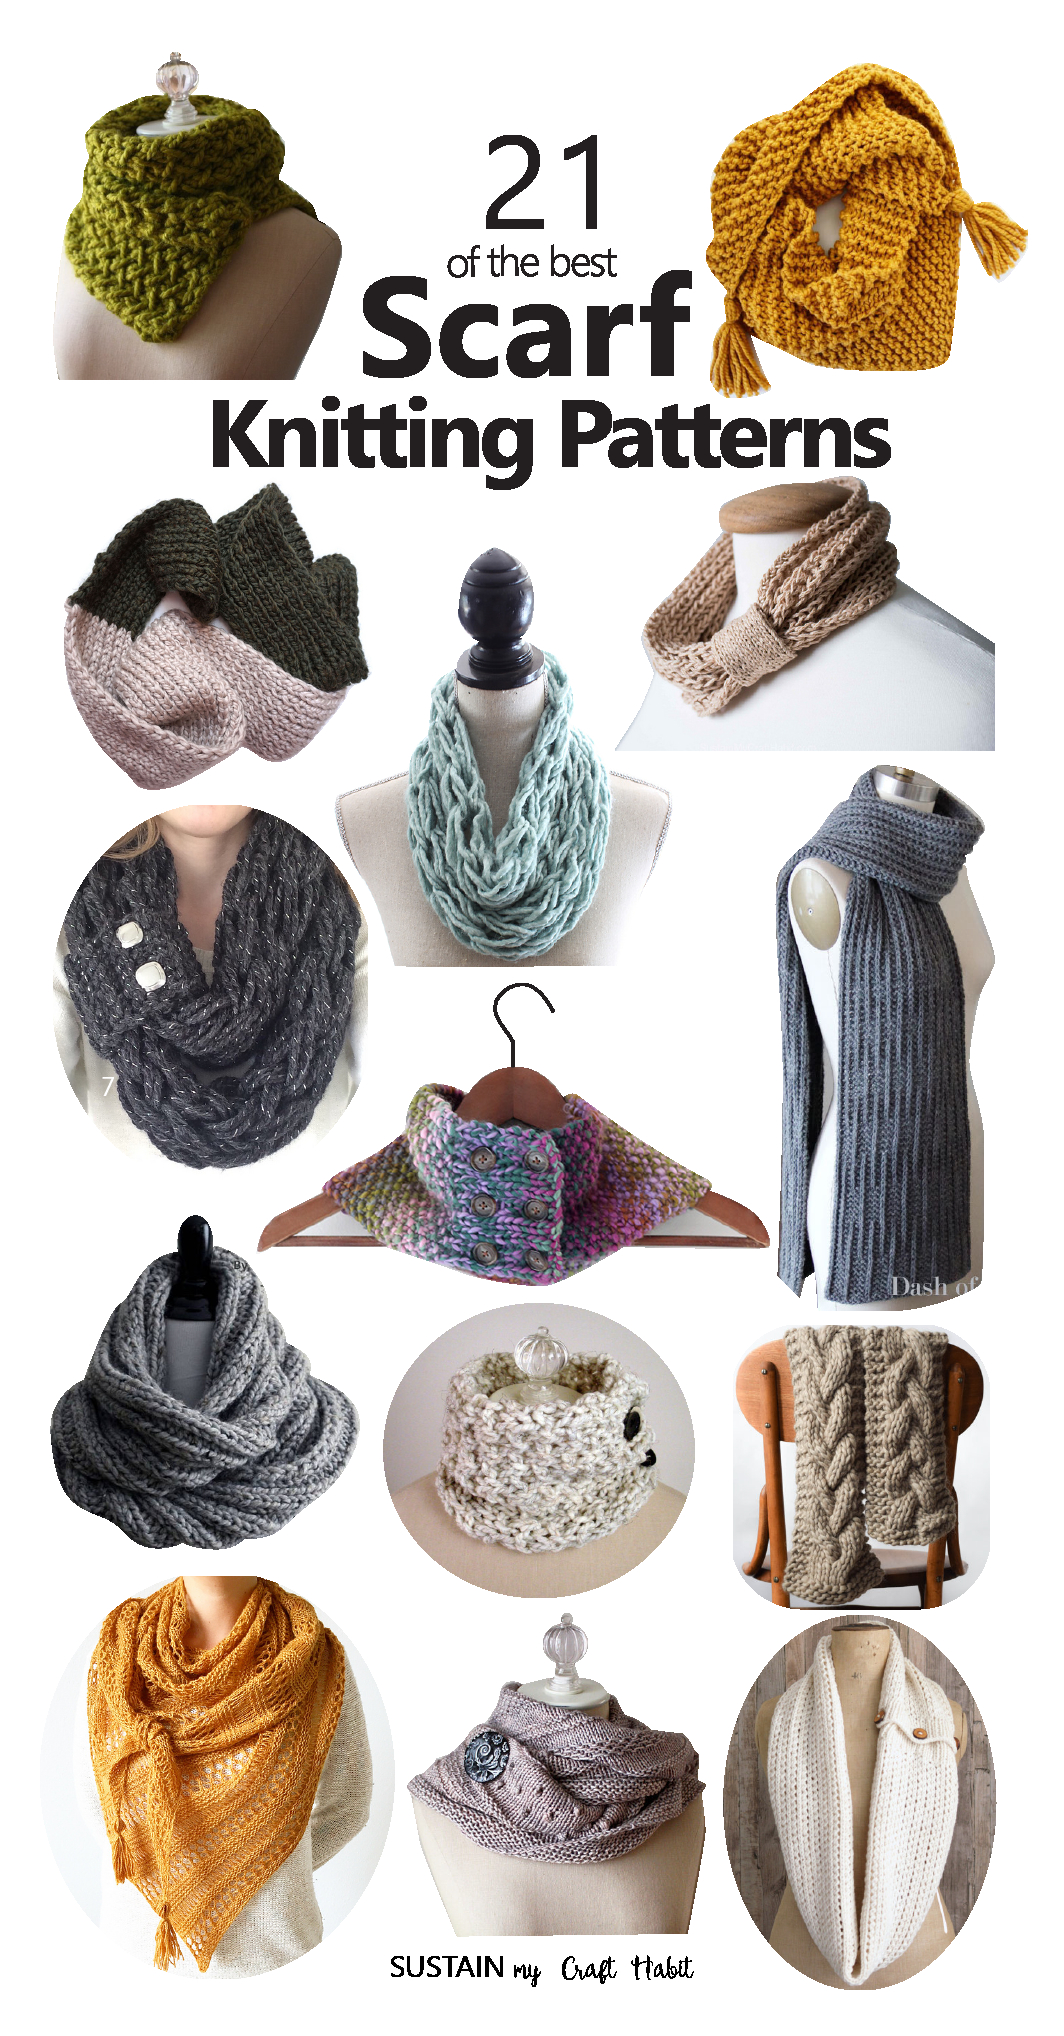 Free Knitting Patterns For Shrugs And Wraps 21 Of The Best Scarf Knitting Patterns Sustain My Craft Habit